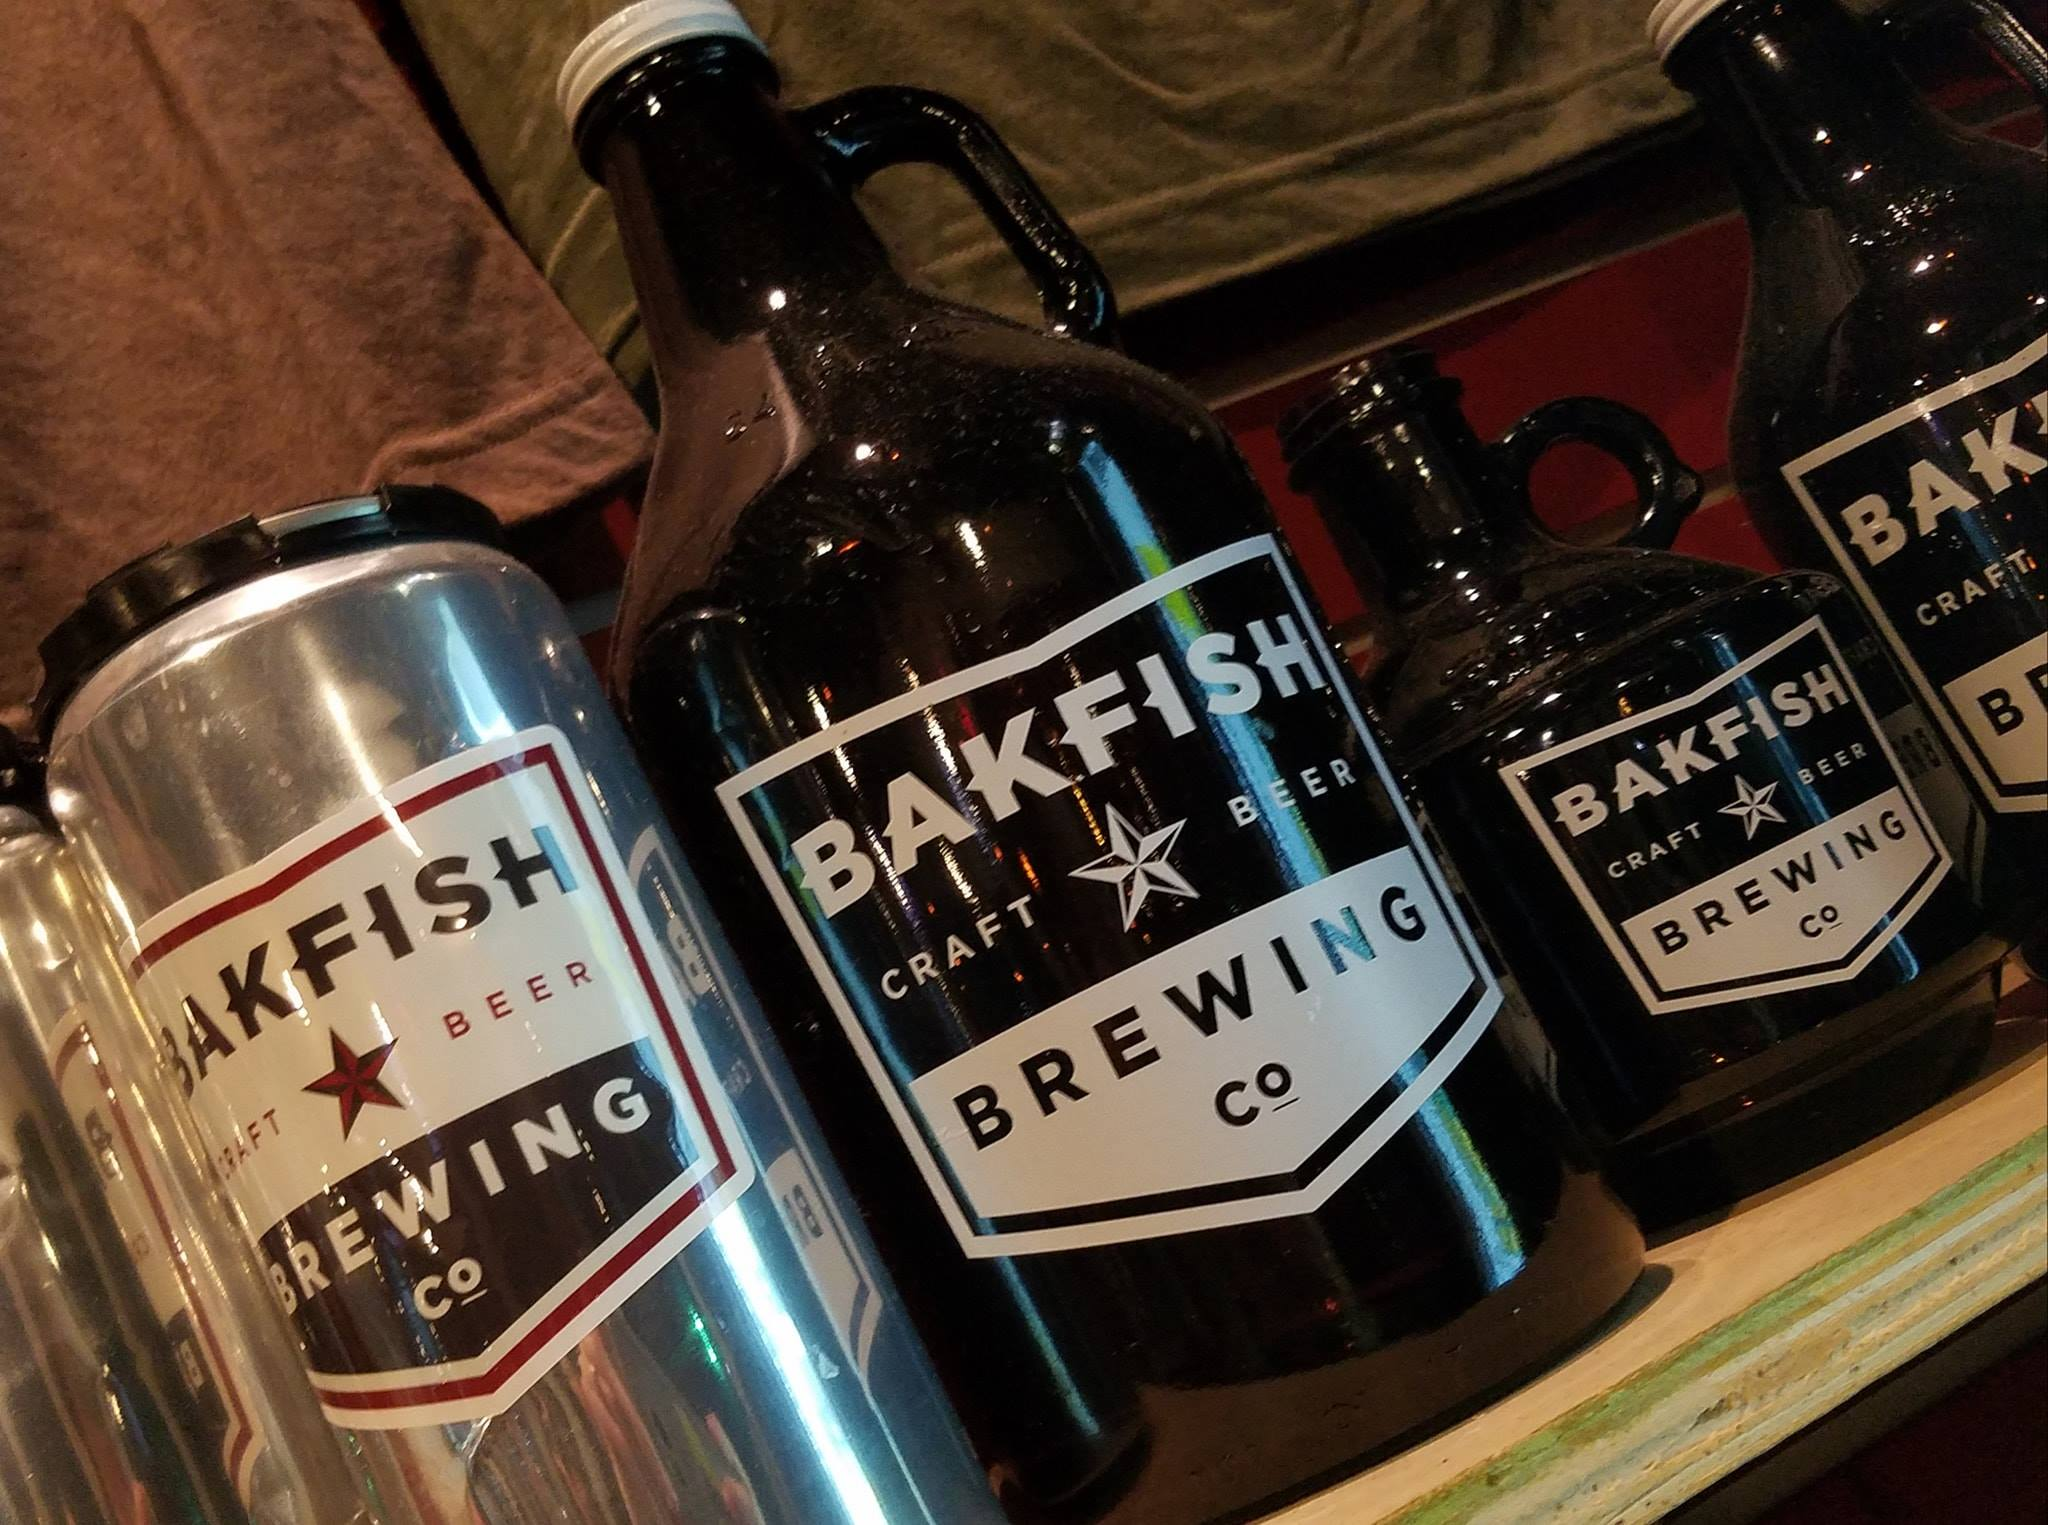 Bakfish Brewing Co